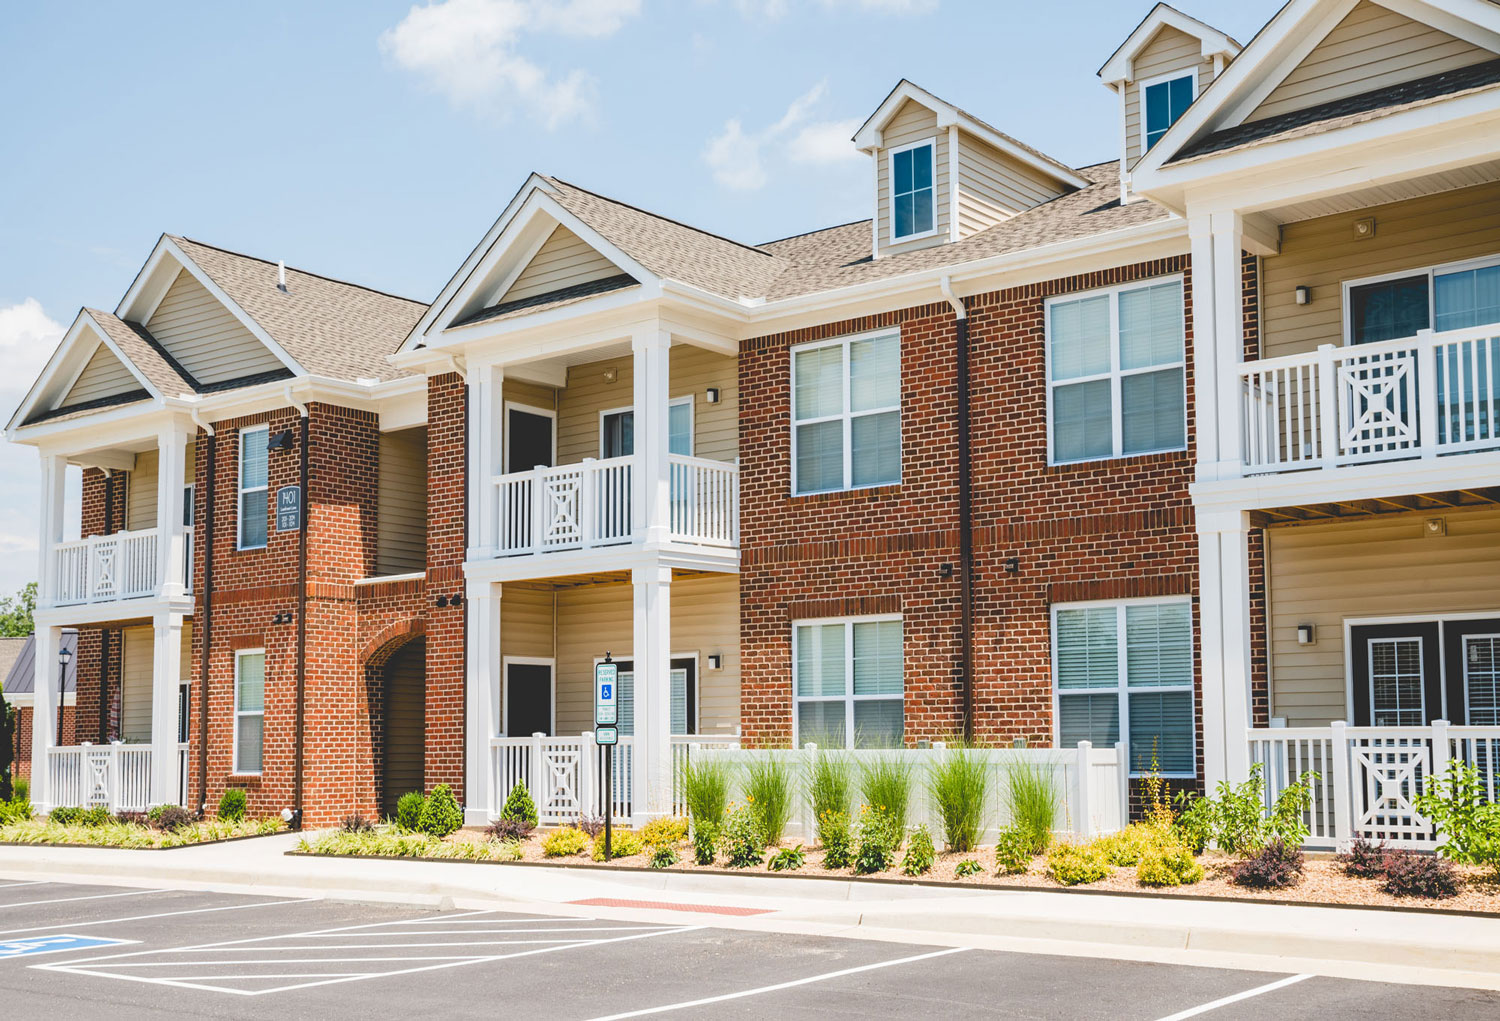 Clairmont at Chesterfield - For Rent in North Chesterfield, VA